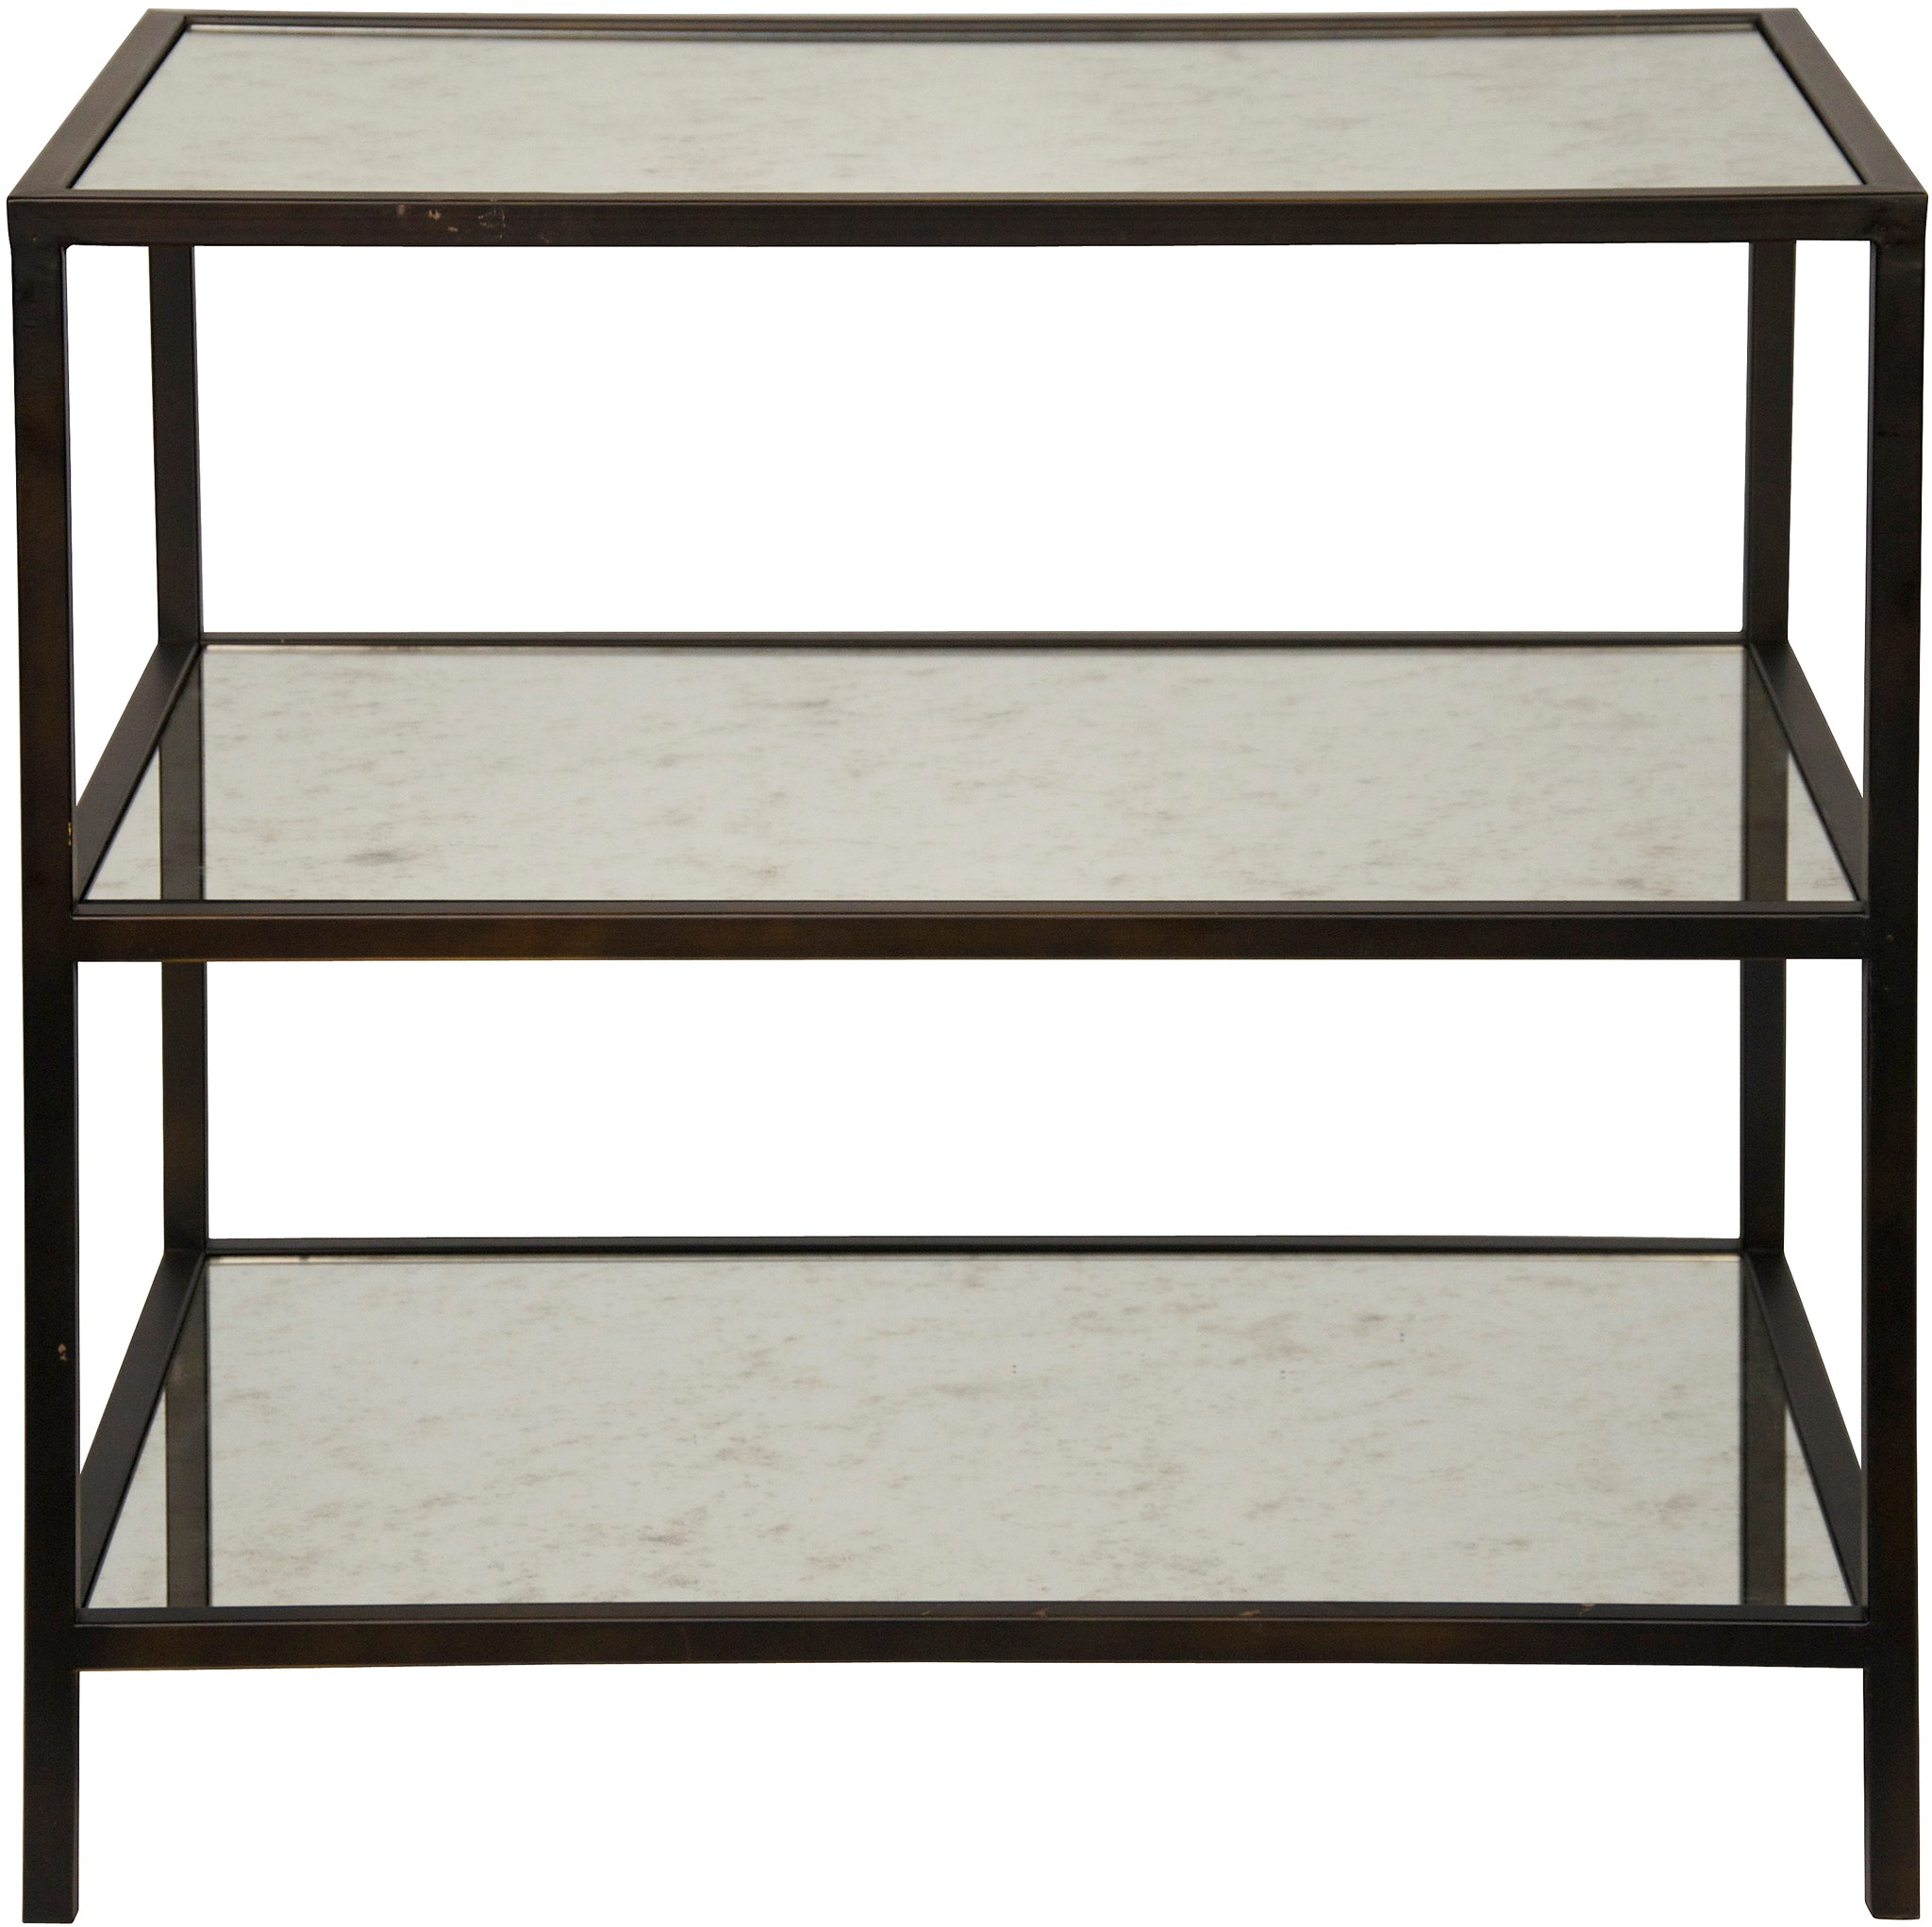 QS 3 Tier Side Table, Metal And Antiqued Mirror